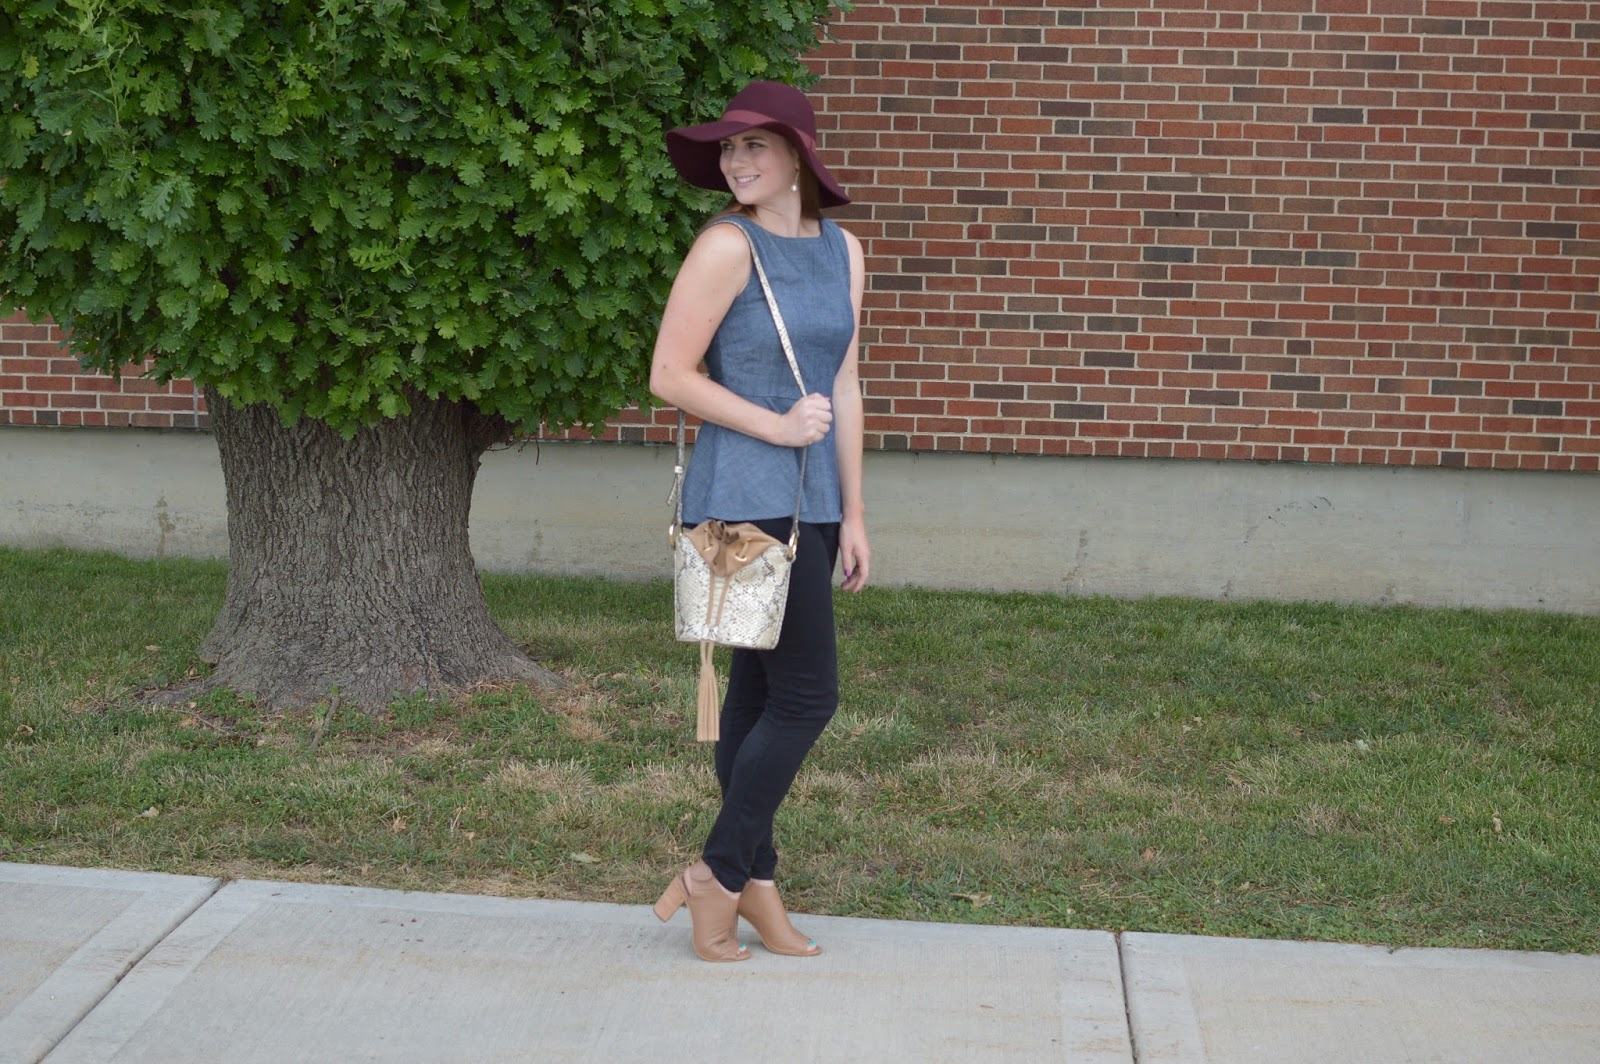 chambray peplum top for fall | what to wear for fall | fall outfit ideas | black jeans with a chambray top and floppy hat |